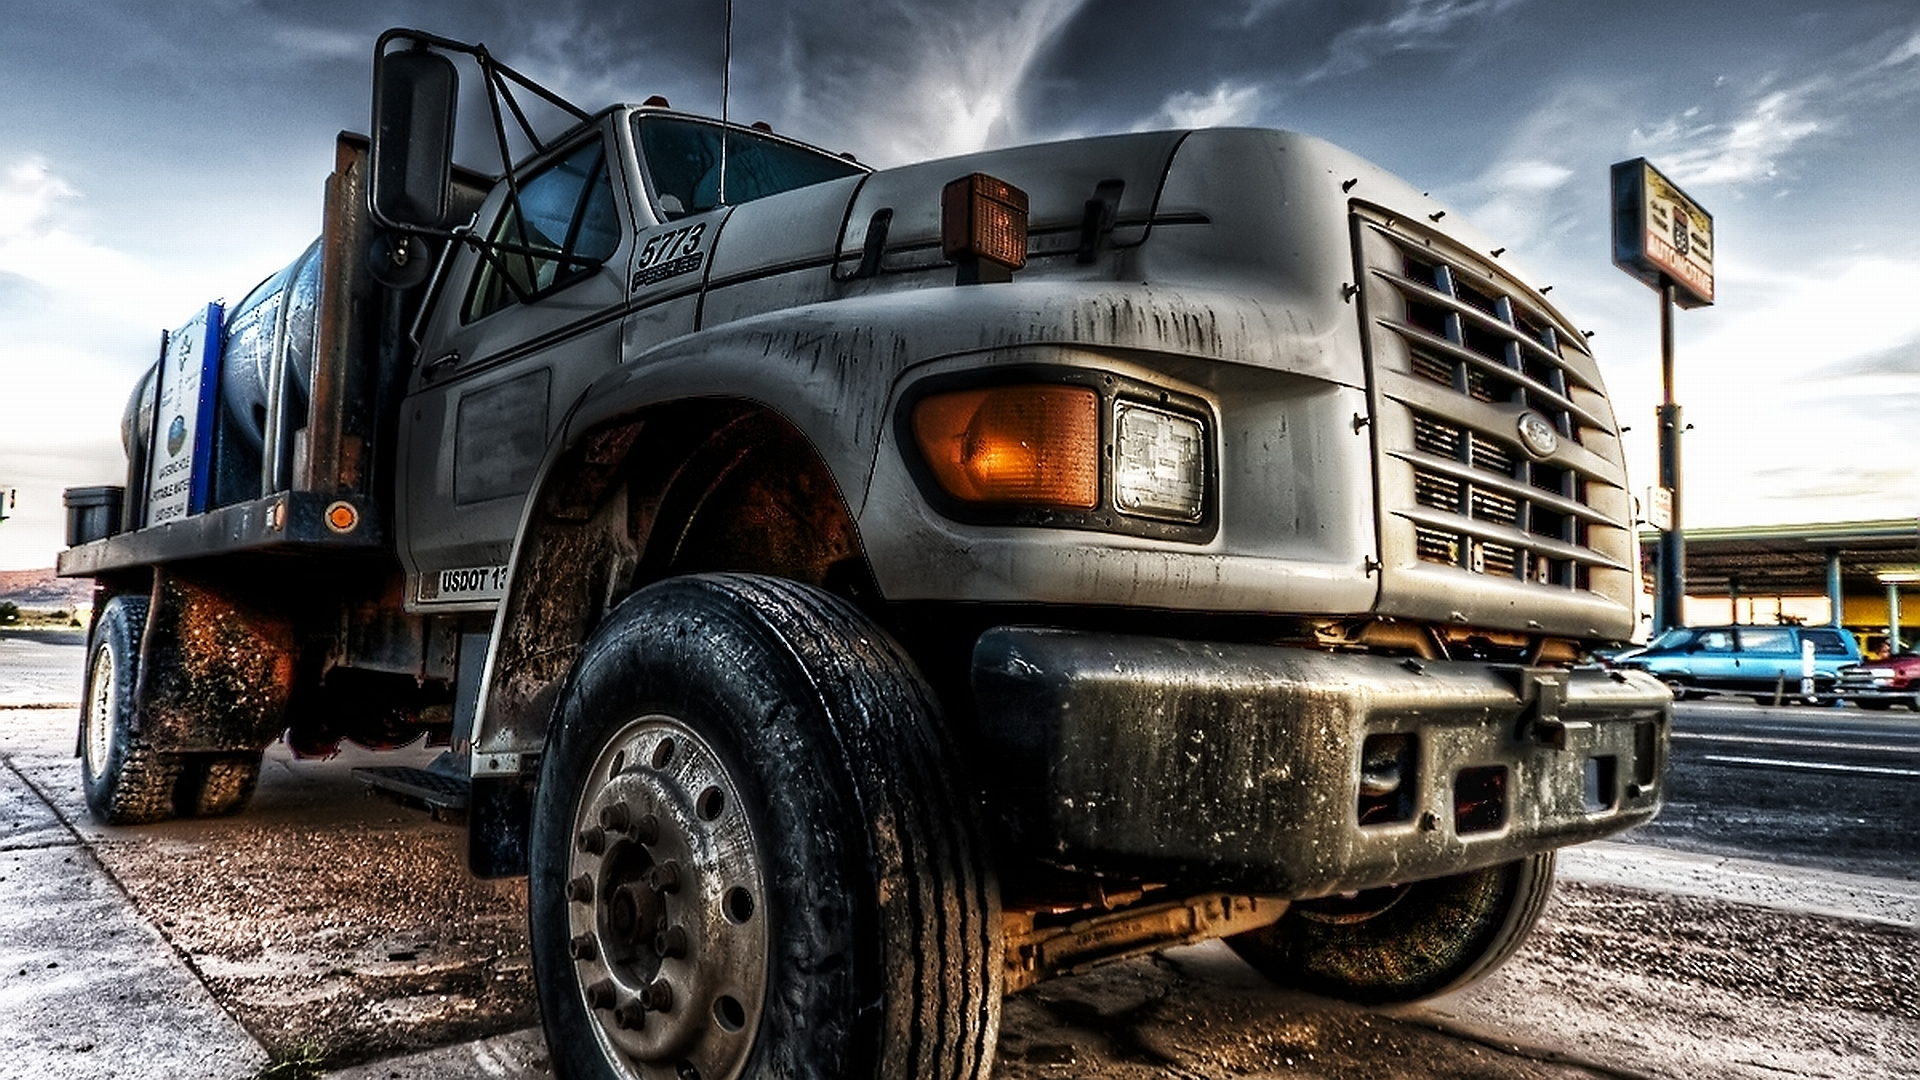 Truck Is Big Cars Wallpaper Background Wallpaper with 1920x1080 1920x1080